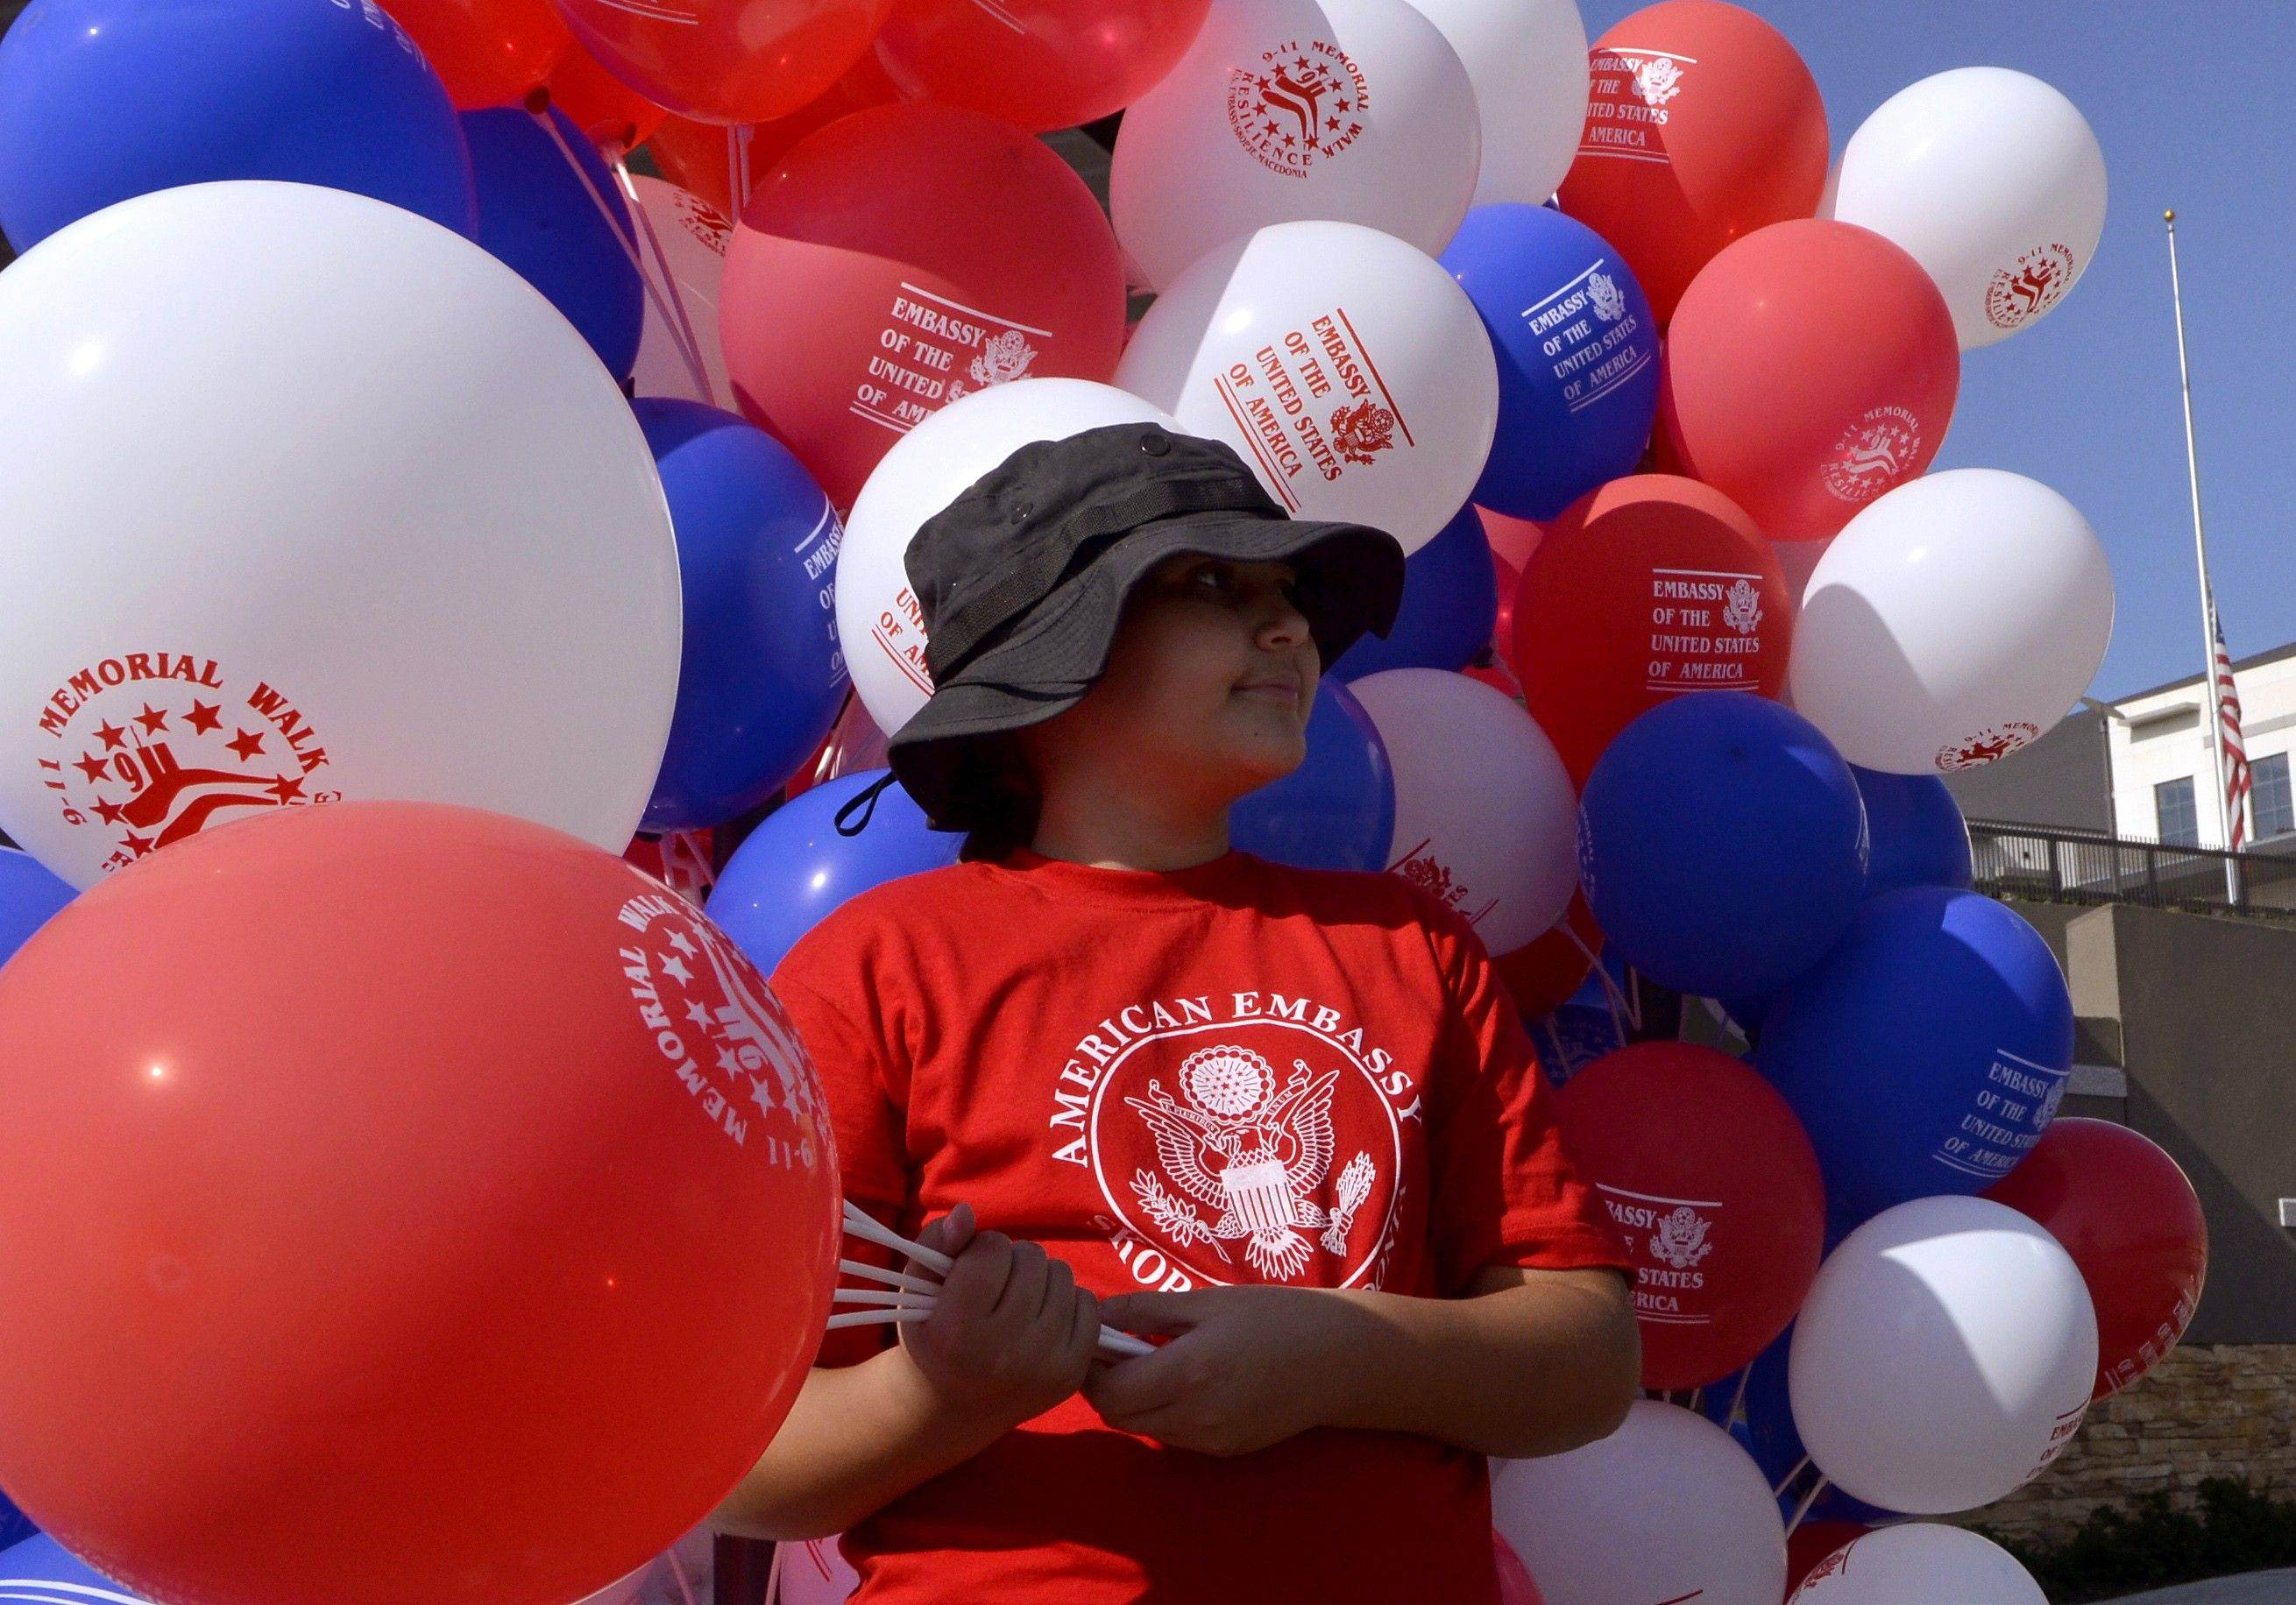 A girl holding balloons looks on in front of the U.S. Embassy compound in Macedonia's capital Skopje, on Sunday, Sept. 11, 2011. U.S. Embassy community organized Sunday a Memorial Walk to honor the 9/11 victims, survivors and their families, marking the 10th anniversary of the terrorist attacks on the United States. (AP Photo/Boris Grdanoski)